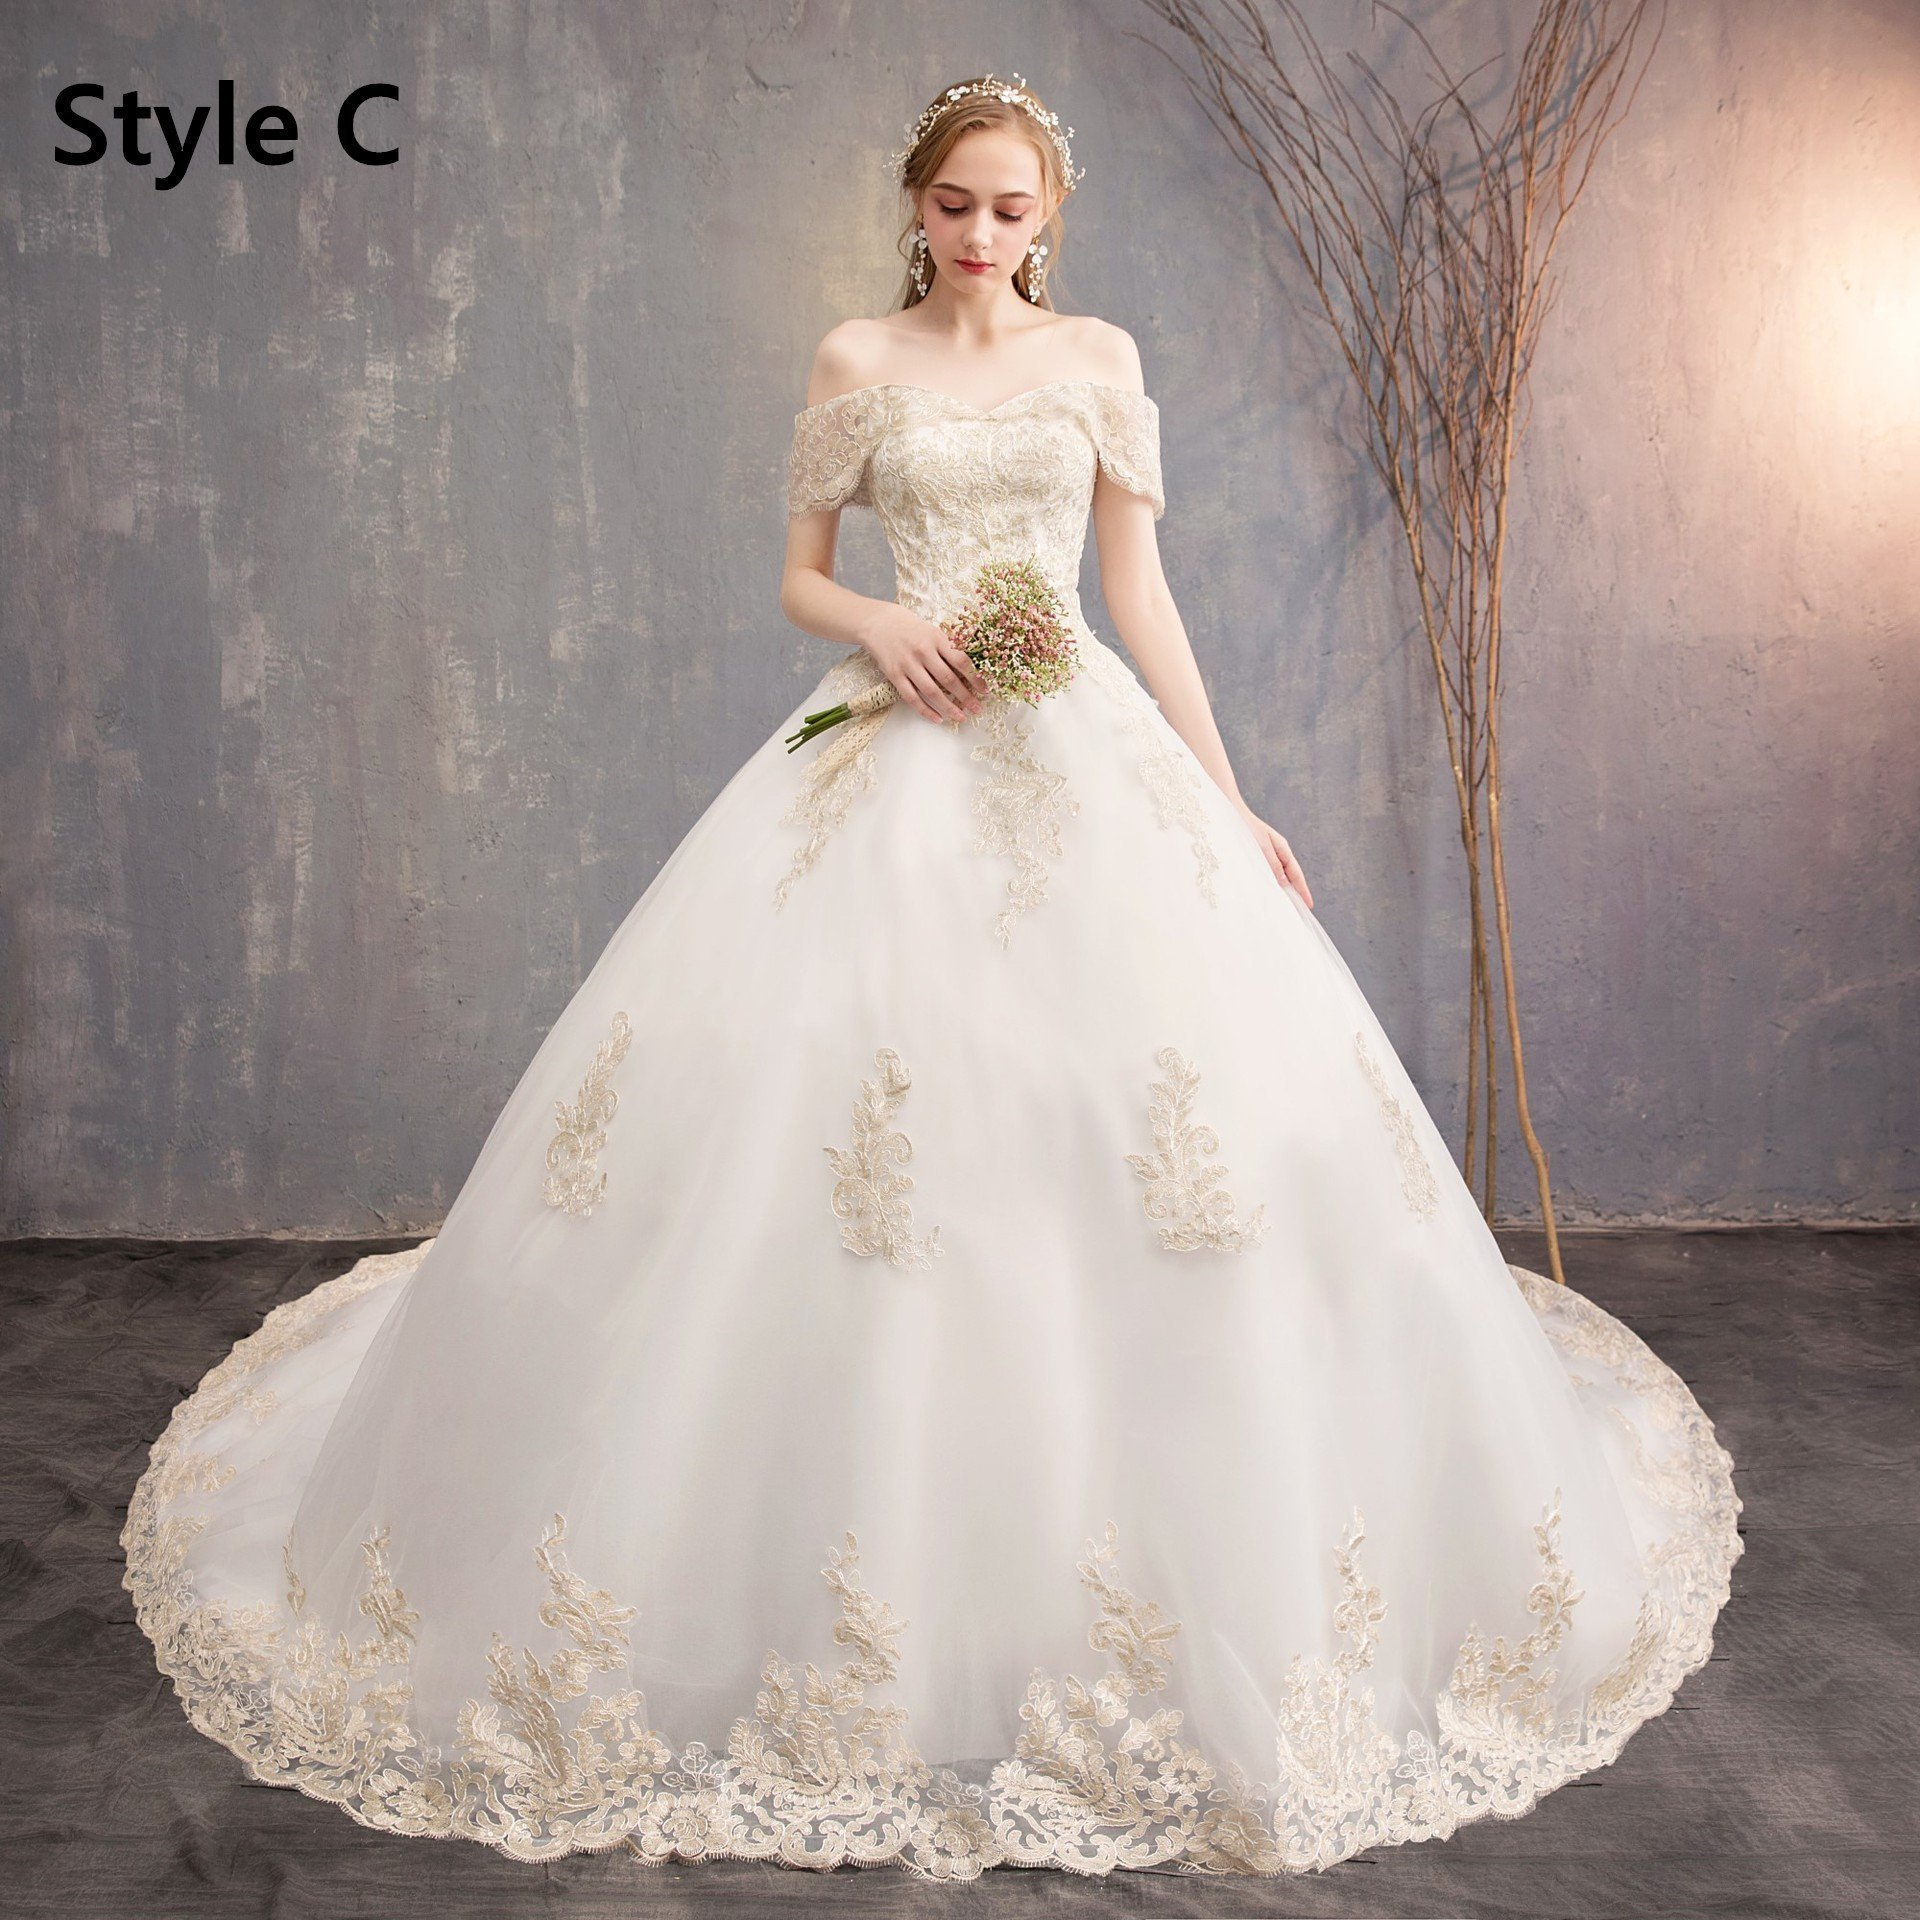 Best Wedding Dresses Lace Dresses Black And Cream Lace Dress Navy Blue Prom Dresses Black Lace Mermaid Wedding Dress Wedding Attire For Women Mother Dress Fitted Lace Dress